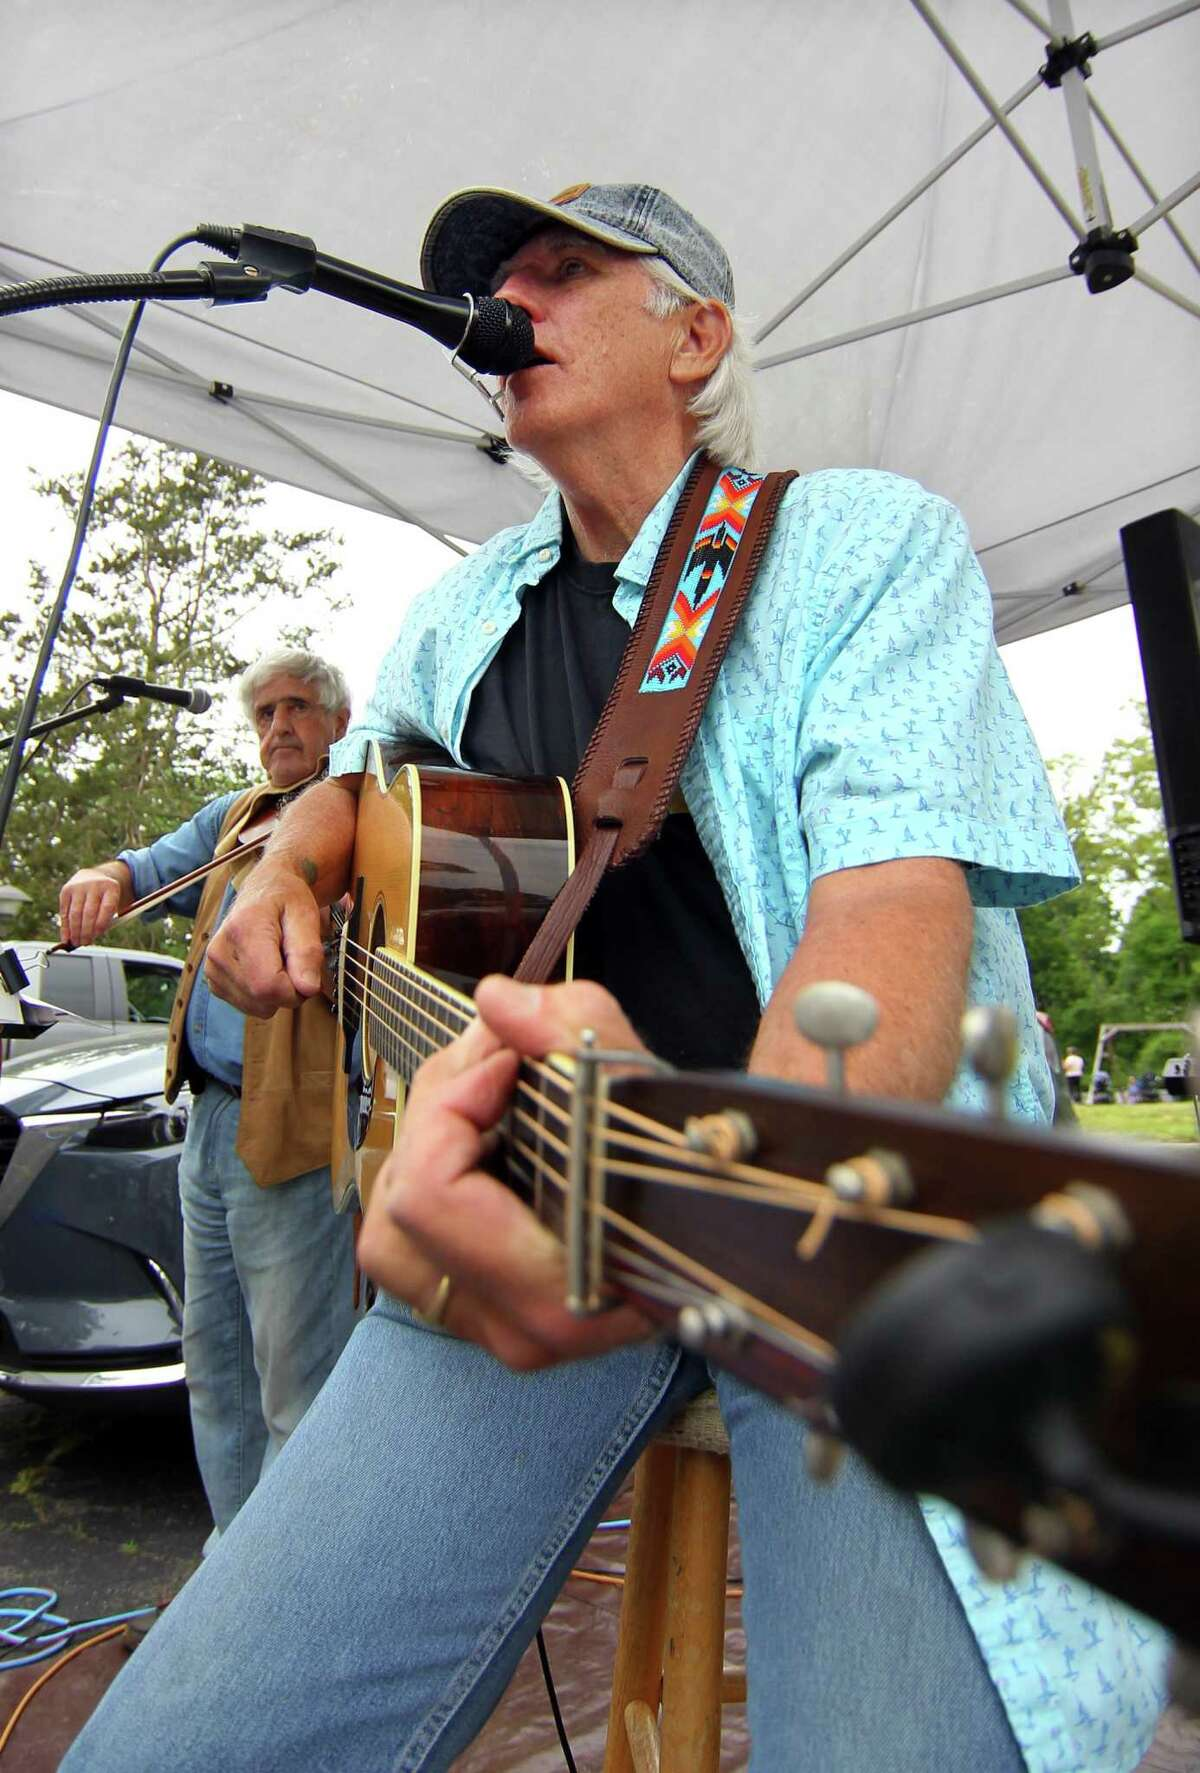 Rick Crossman, who leads the trio Long Meadow, performs during Opening Day of the Old Greenwich Farmer's Market at Living Hope Community Church in Greenwich, Conn., on Wednesday June 2, 2021. The Market is held rain or shine from 2:30 to 6 p.m. at Living Hope Community Church, 38 West End Avenue, Old Greenwich. Residents may also drop off their food scraps during market hours for Greenwich Composts.